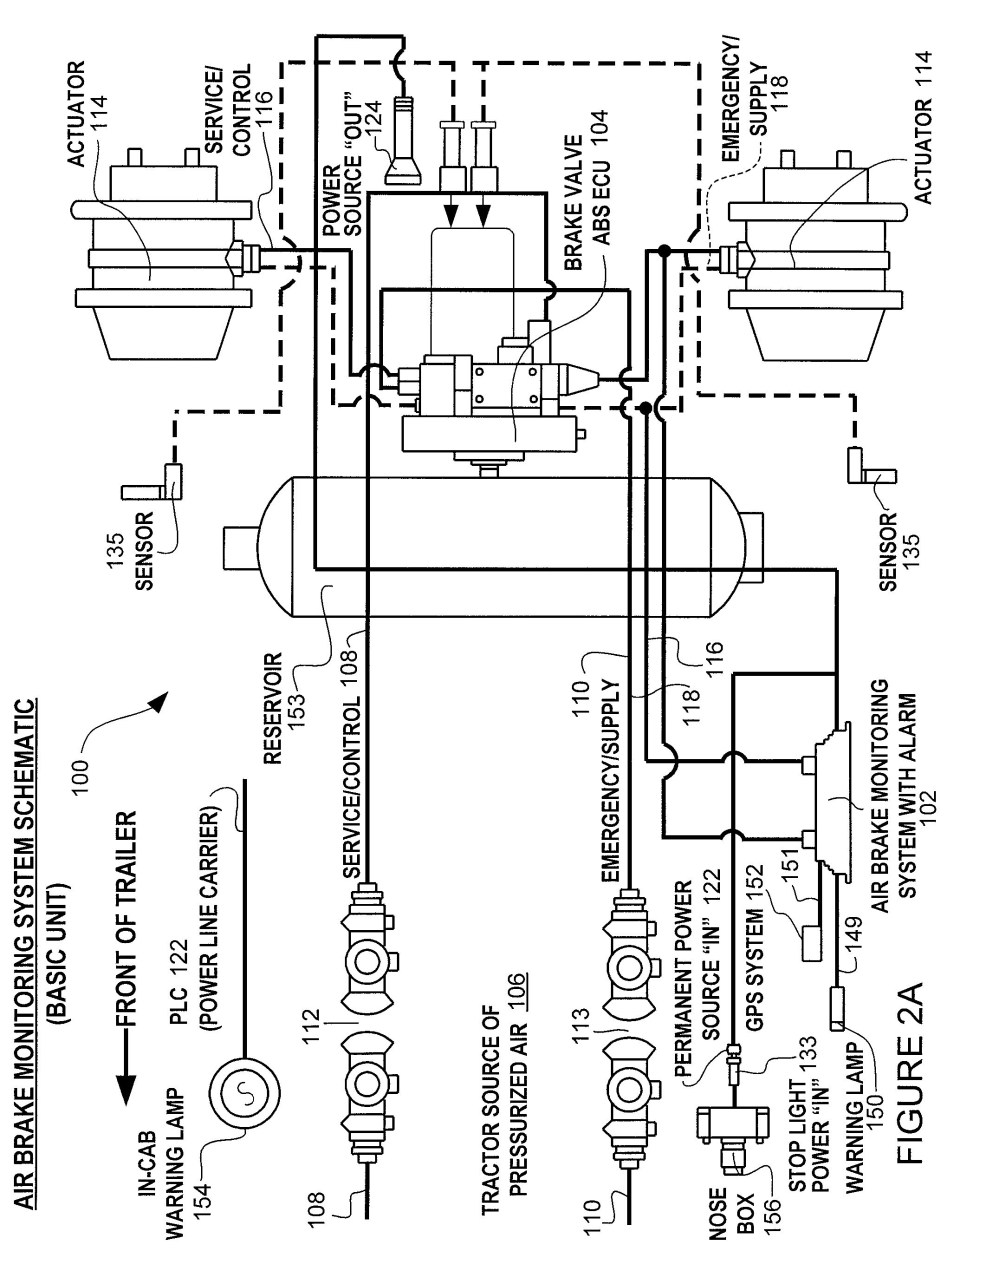 medium resolution of wabco abs wiring diagram trailer blog wiring diagram wabco abs wiring diagram wiring diagram dat wabco